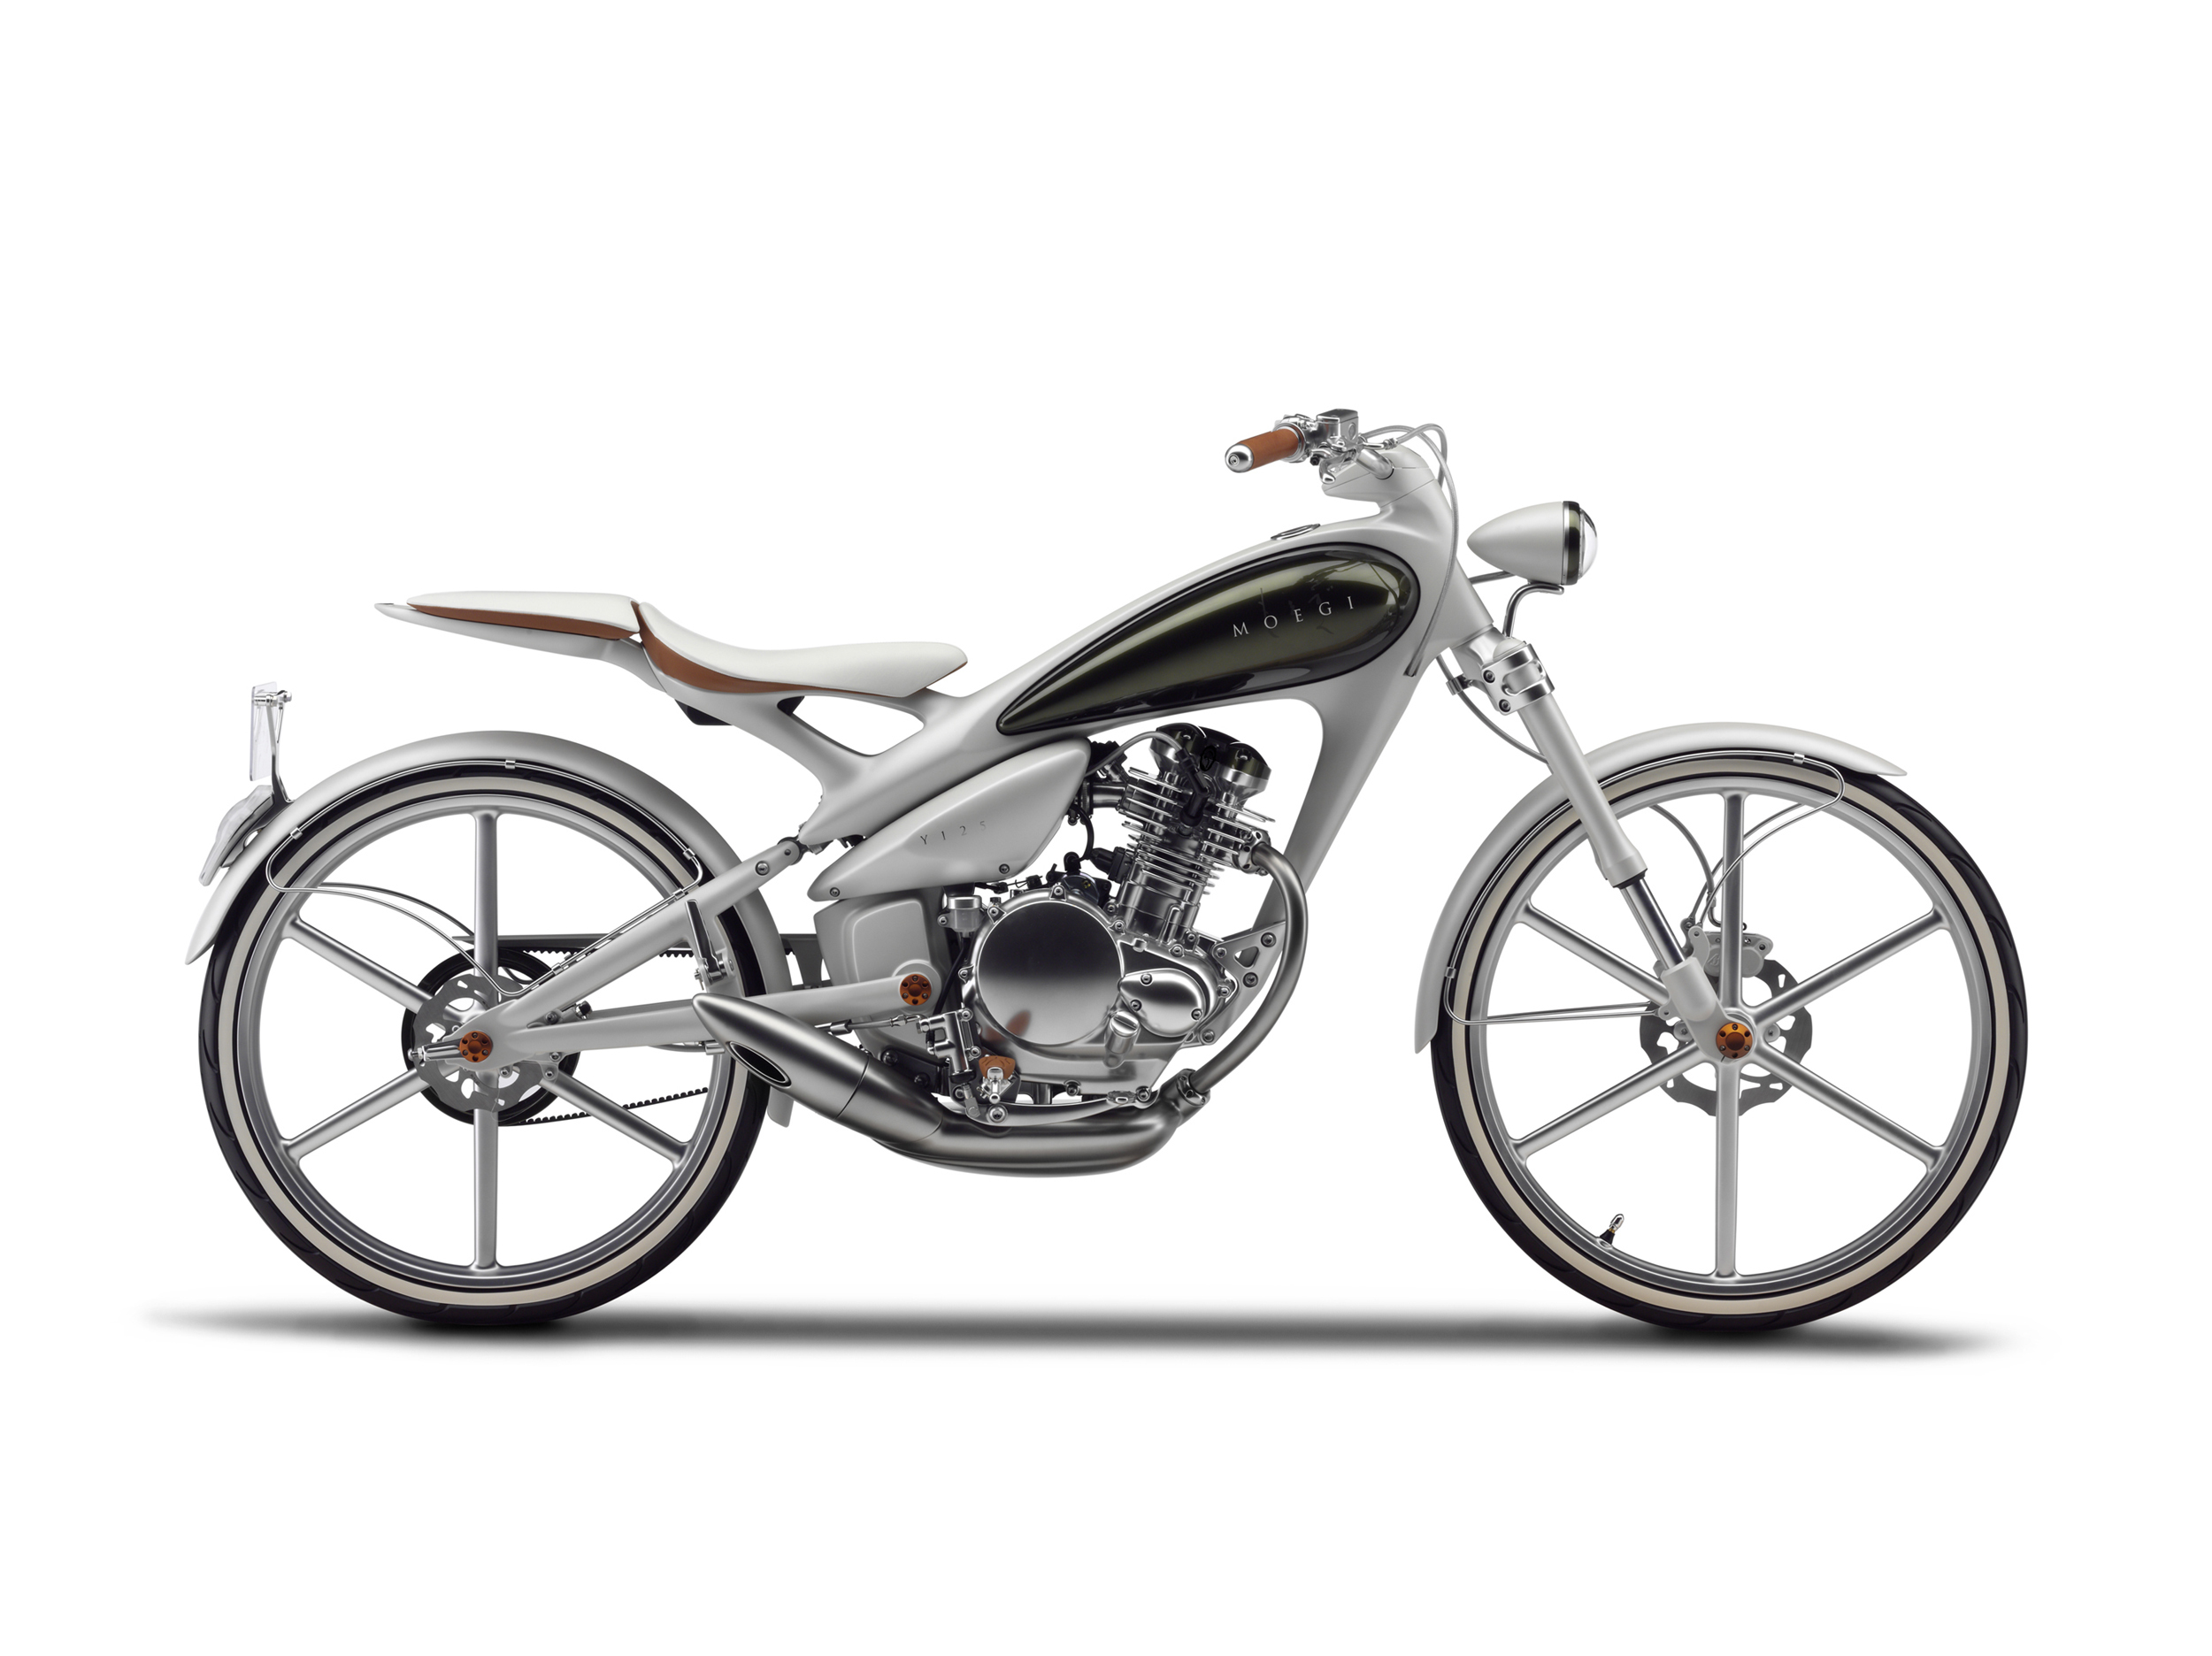 Yamaha S Gorgeous Bicycle With An Engine